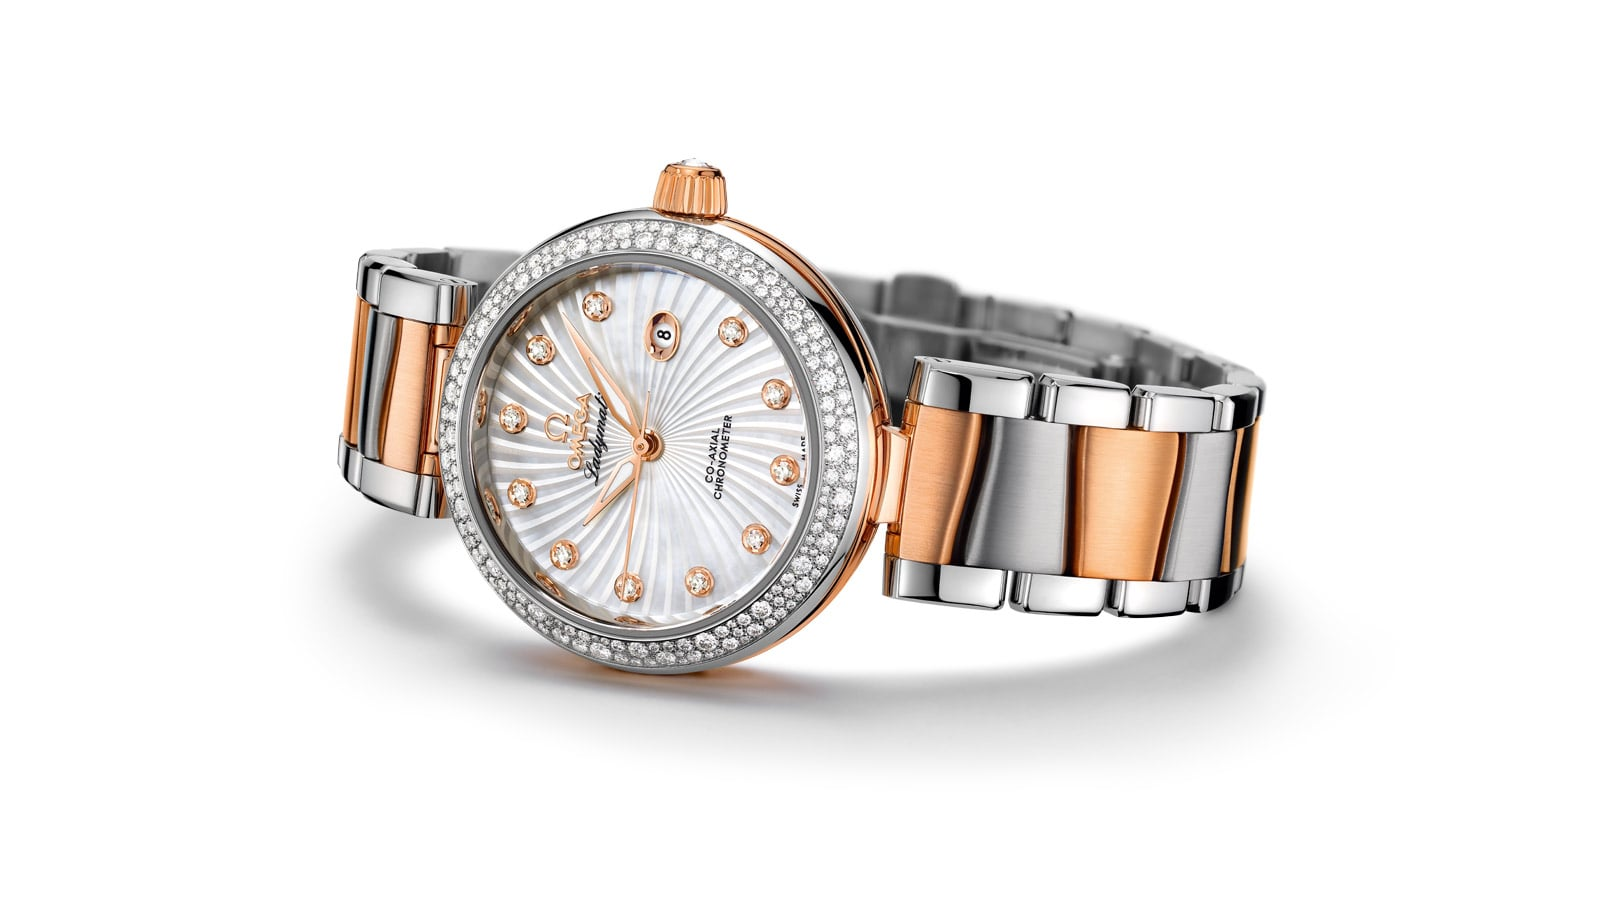 De Ville Ladymatic watch for ladies with a round stainless steel and rose gold case encrusted with diamonds